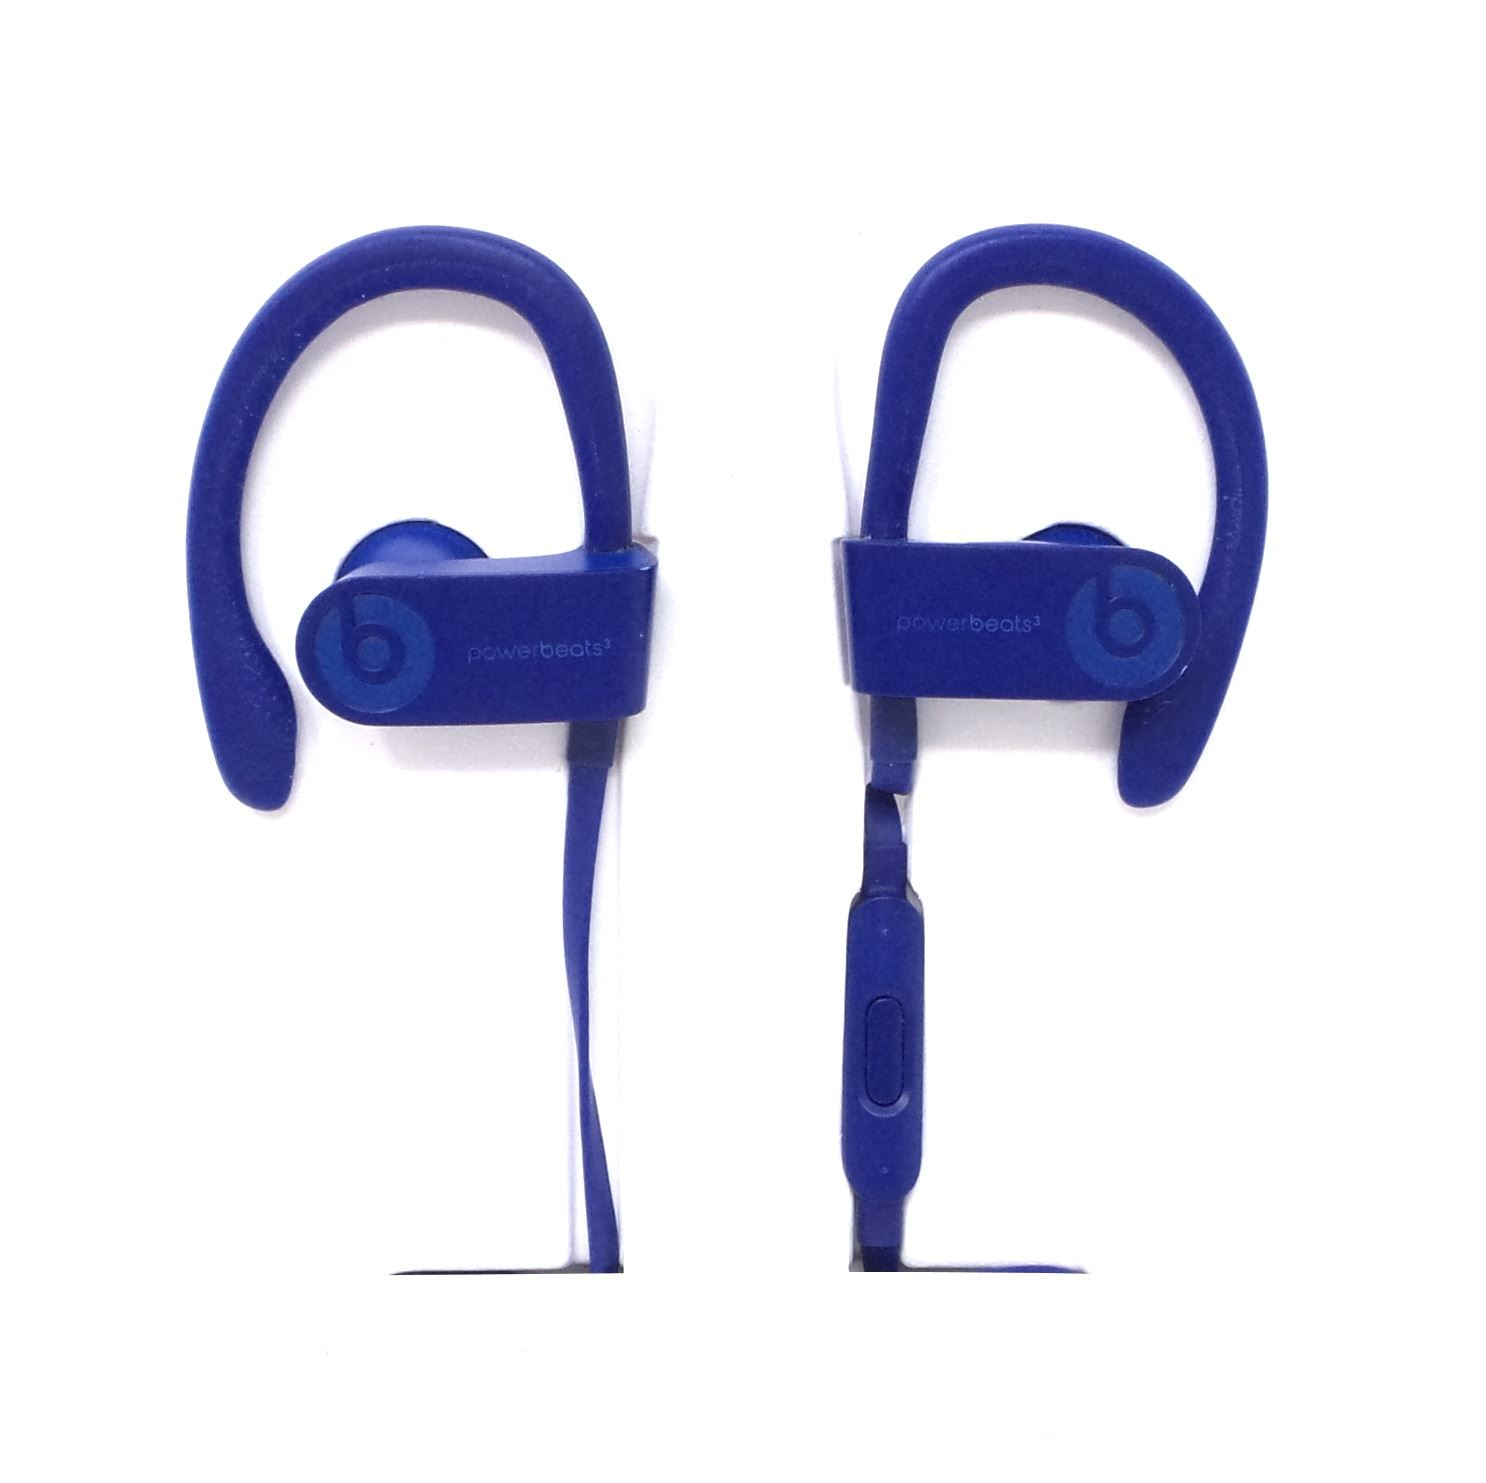 f463b8c8dde Beats by Dr. Dre Powerbeats3 Wireless Headset Neighborhood Collection Break  Blue